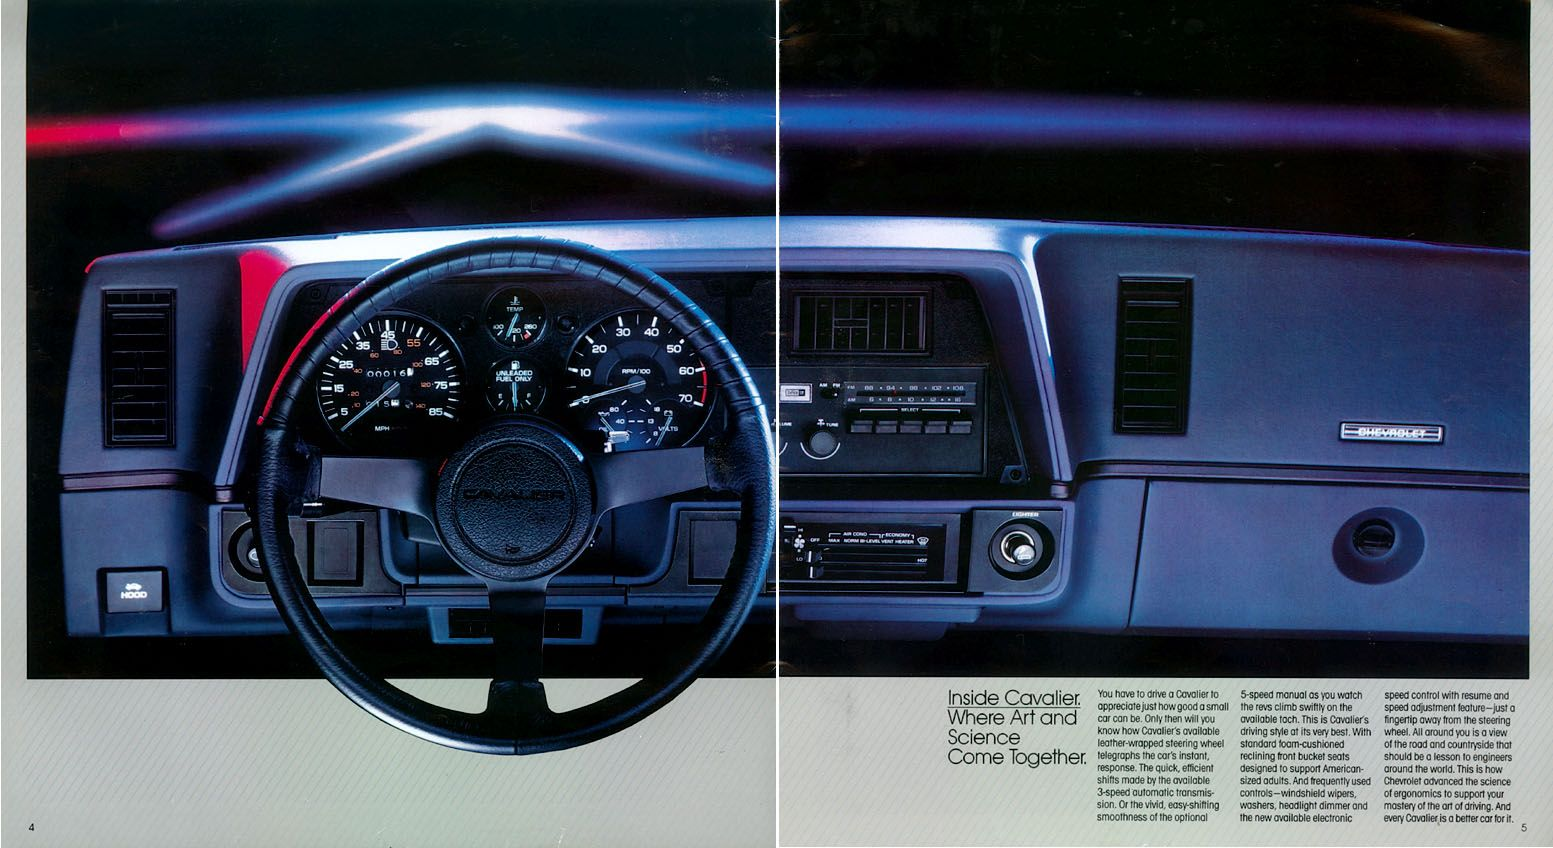 Cavalier 1982 chevrolet cavalier : 1984 Chevrolet Cavalier-03 | Cars | Pinterest | Chevrolet and Cars